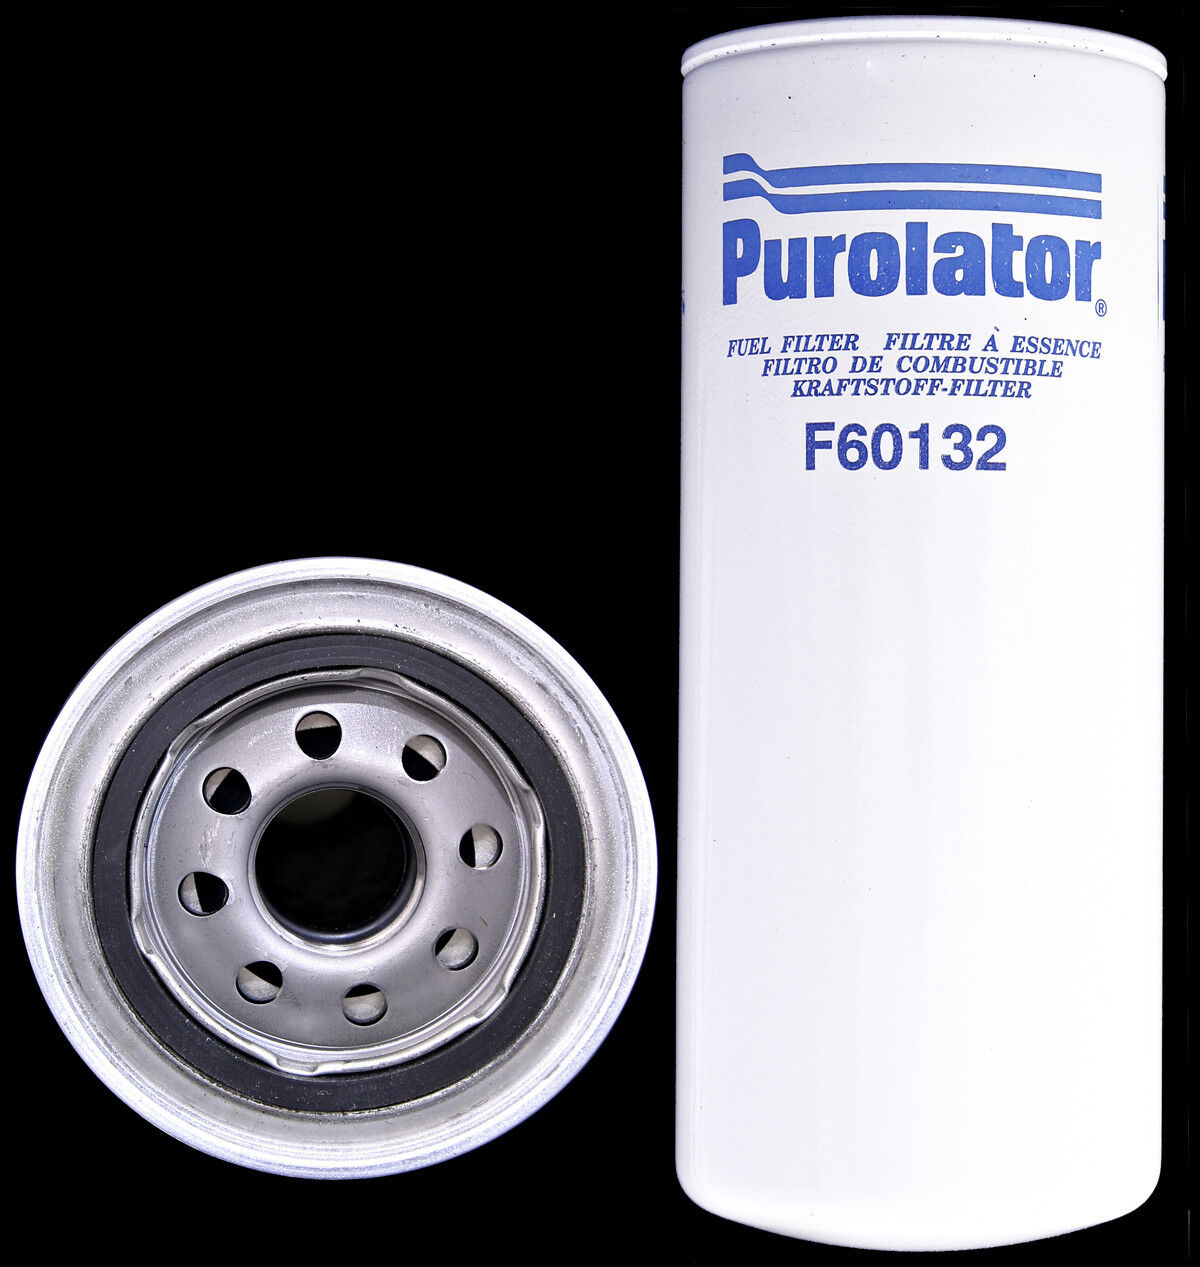 Purolator F60132 Fuel Filter 1112 Picclick Filters 1 Of 1free Shipping